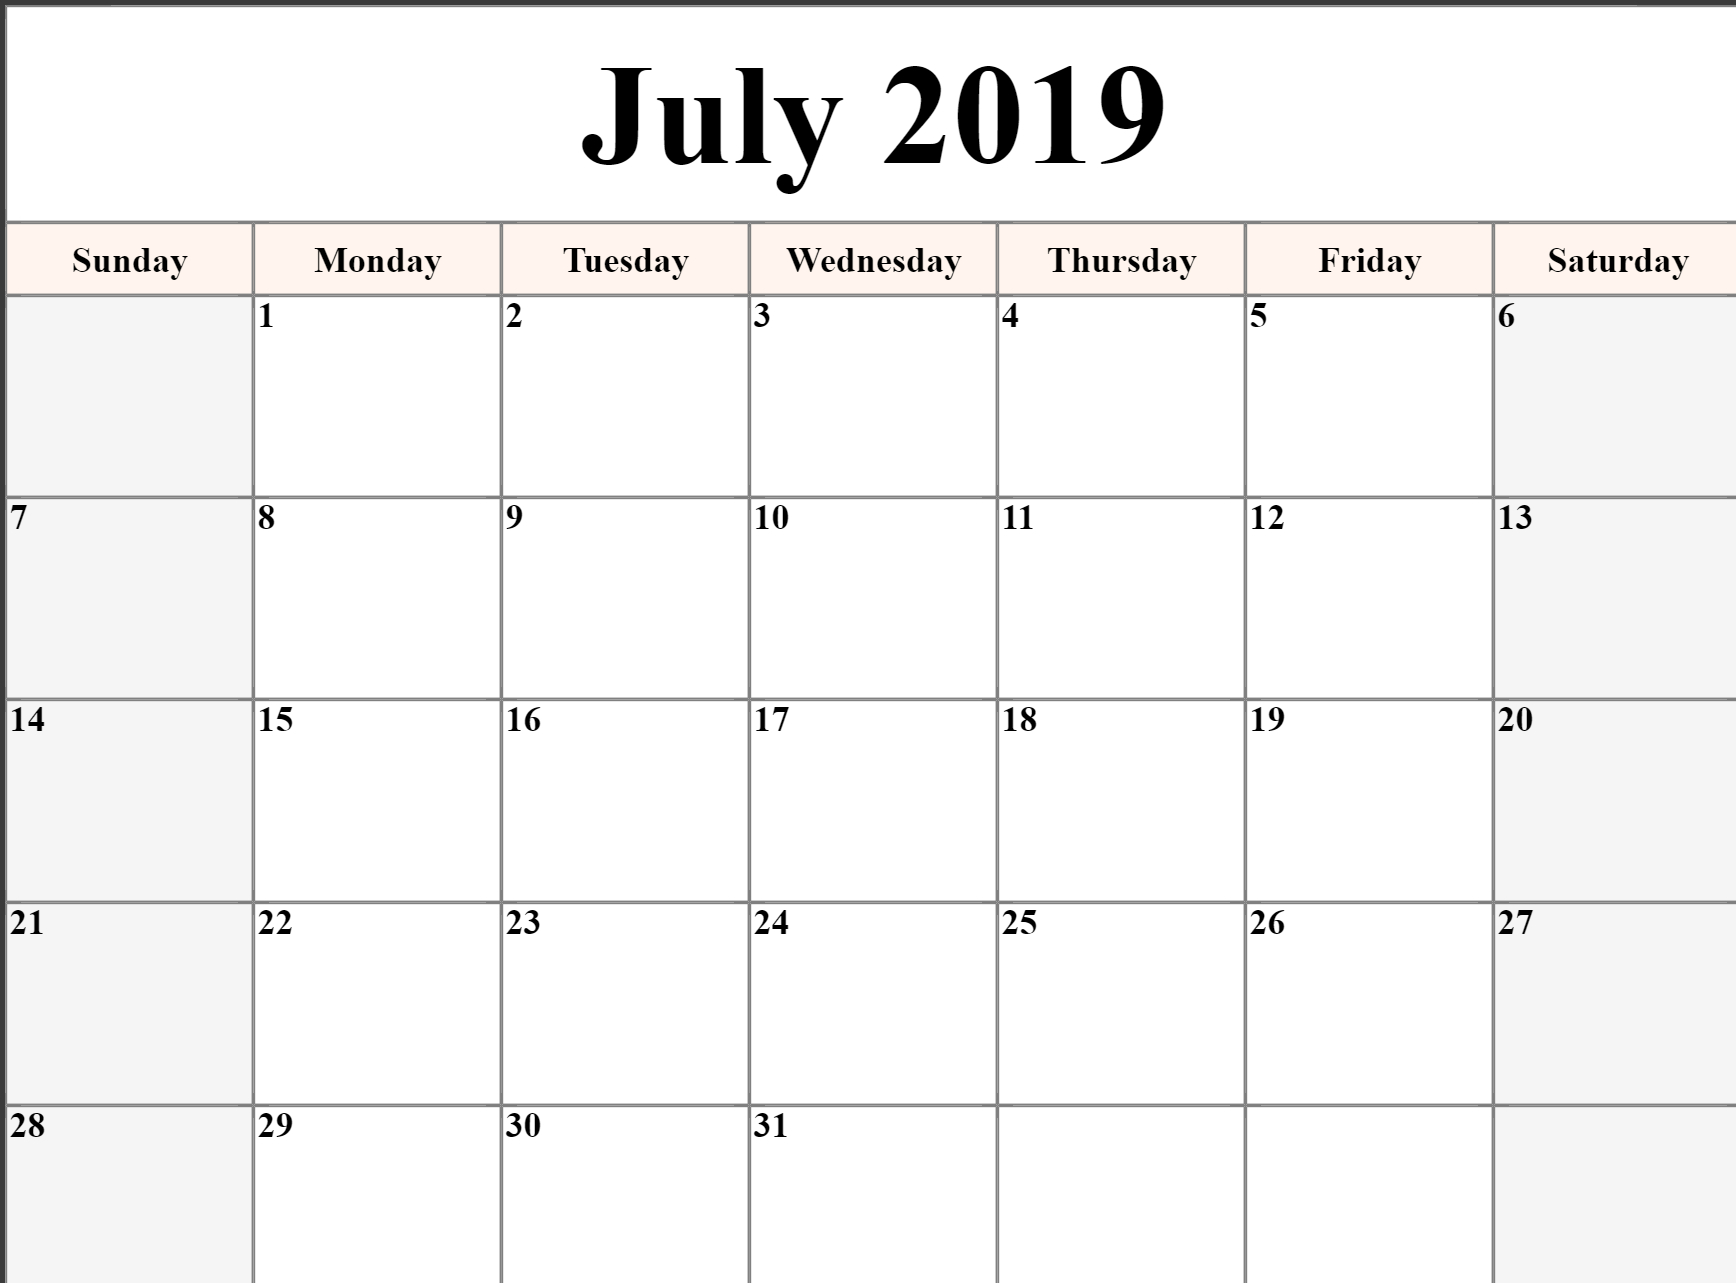 Free Printable July 2019 Calendar Download - Free Printable Calendar intended for Calendar Blank Printable Monday Start A4